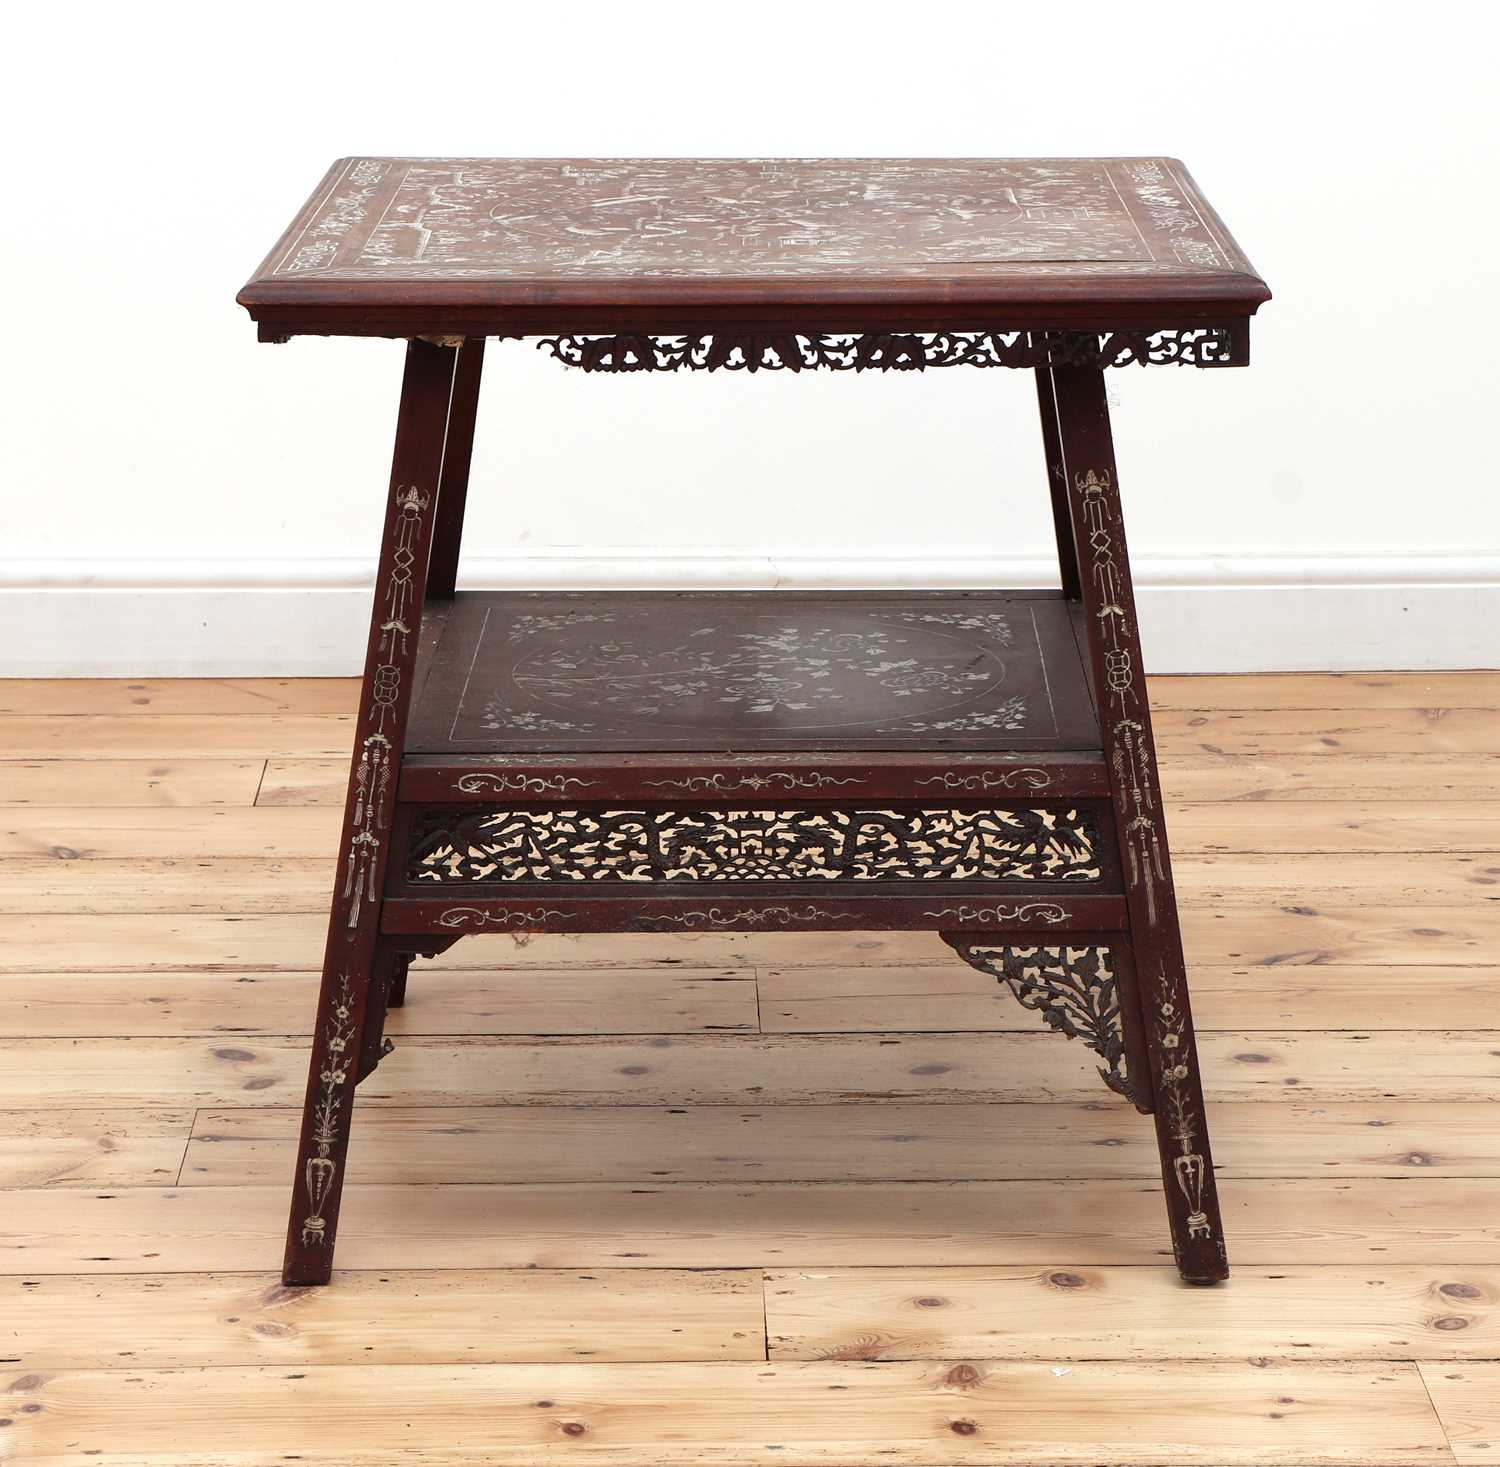 A Chinese hardwood and ivory inlaid occasional table, - Image 3 of 10